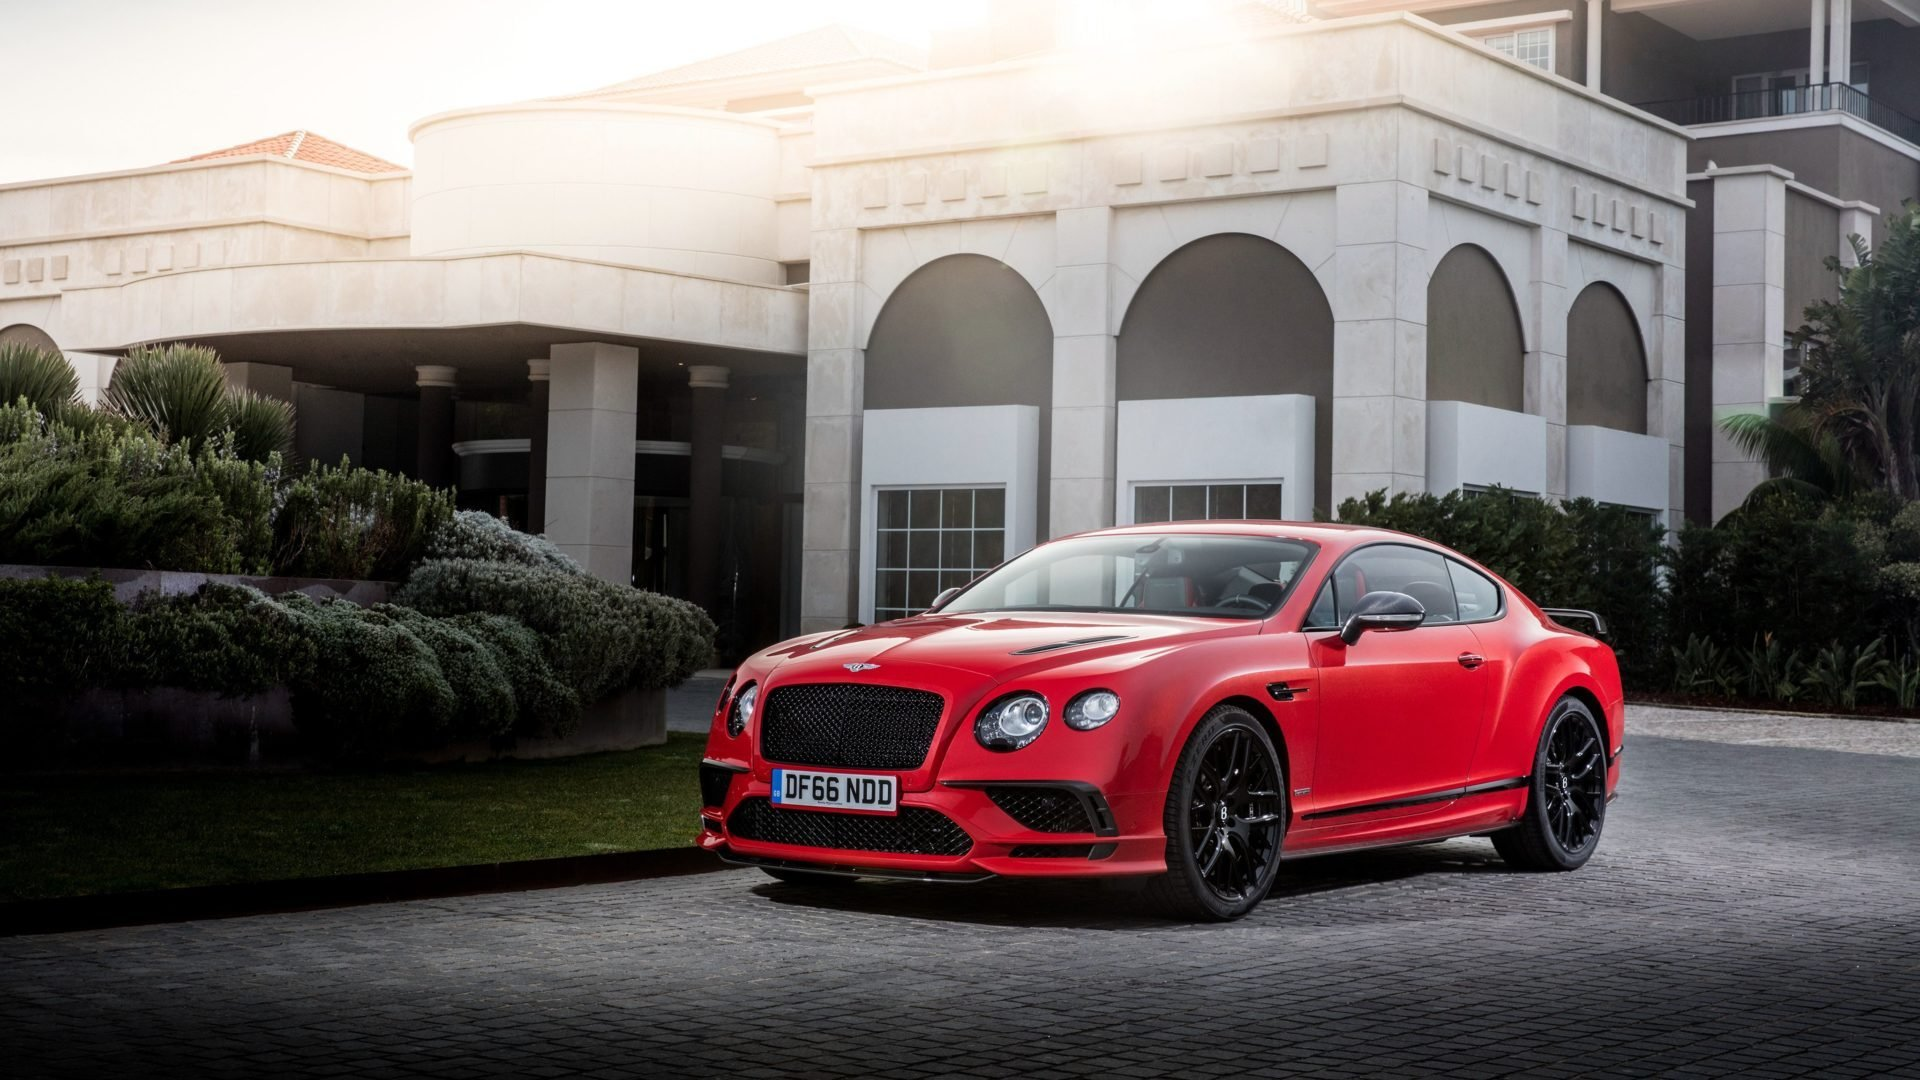 Latest Bentley Hd Car Wallpapers New Tab Theme Top Speed Motors Free Download